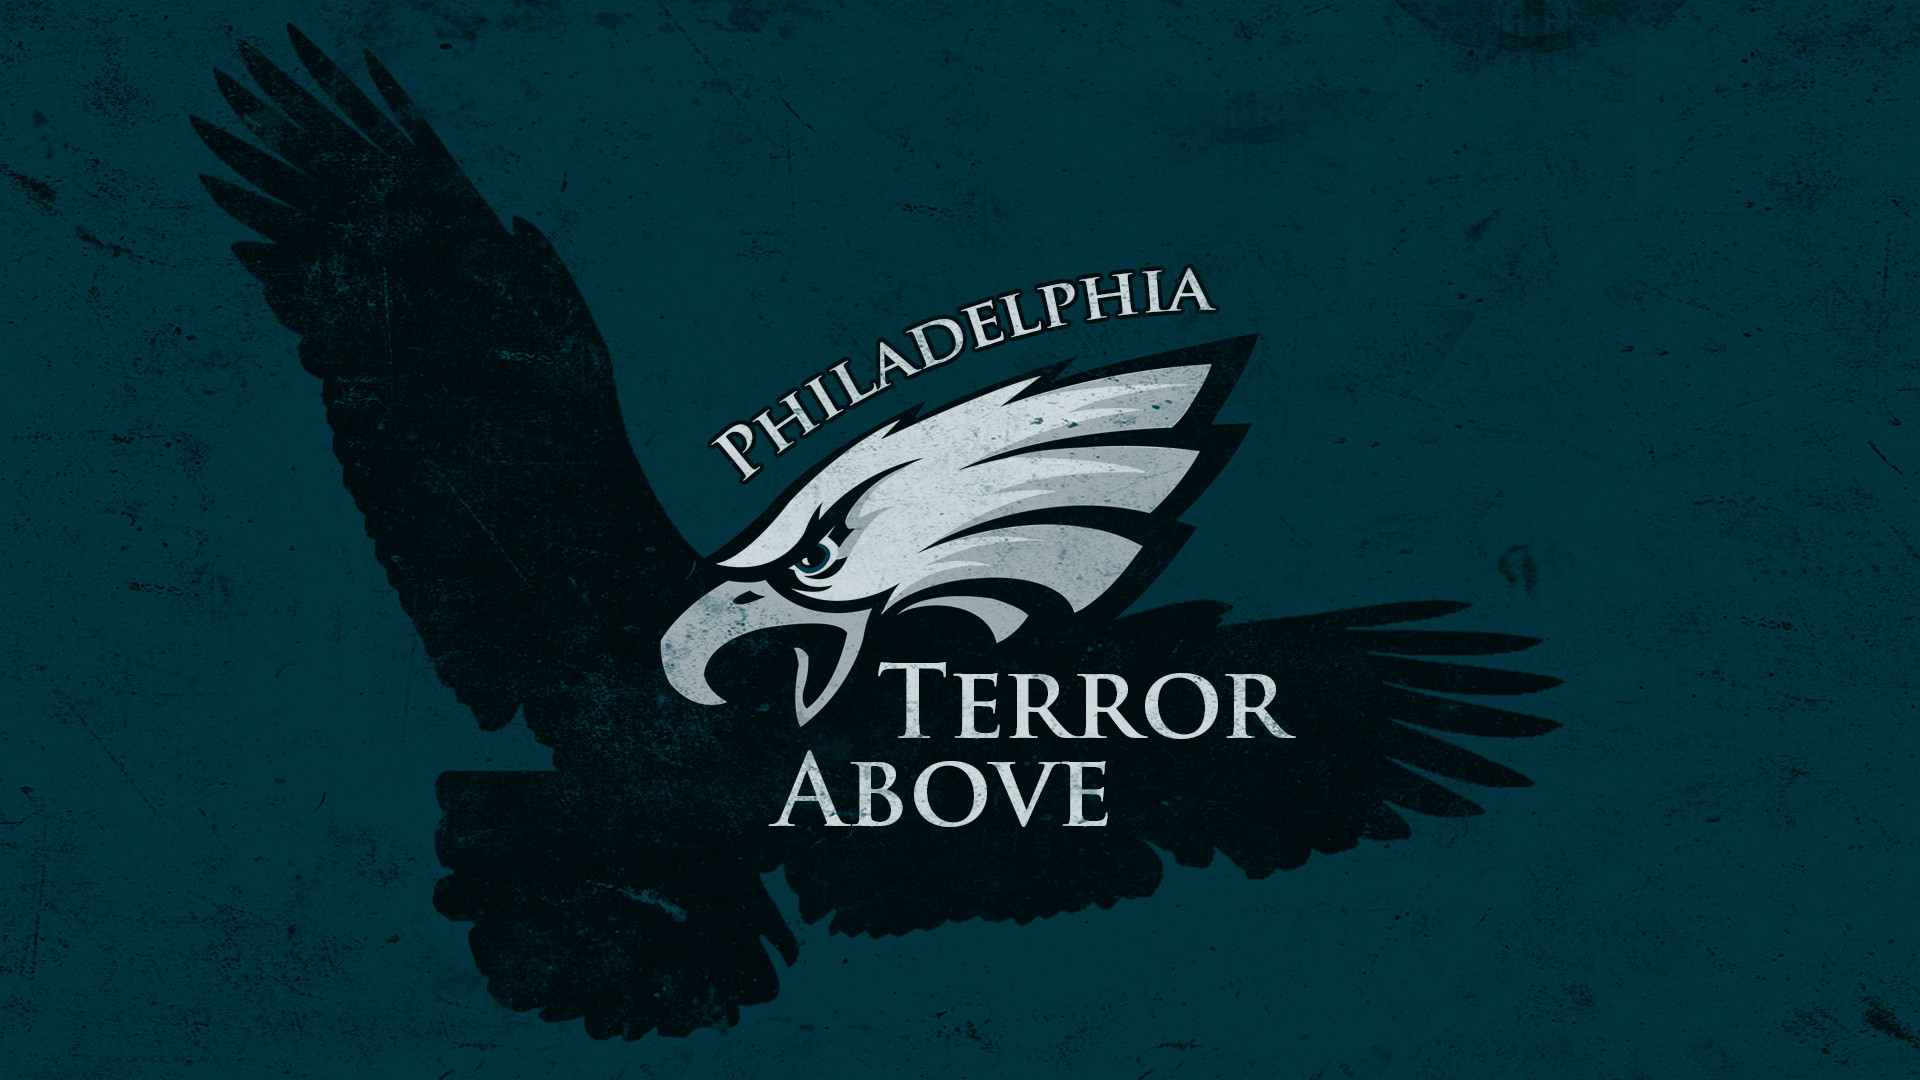 1920x1080 Philadelphia Eagles